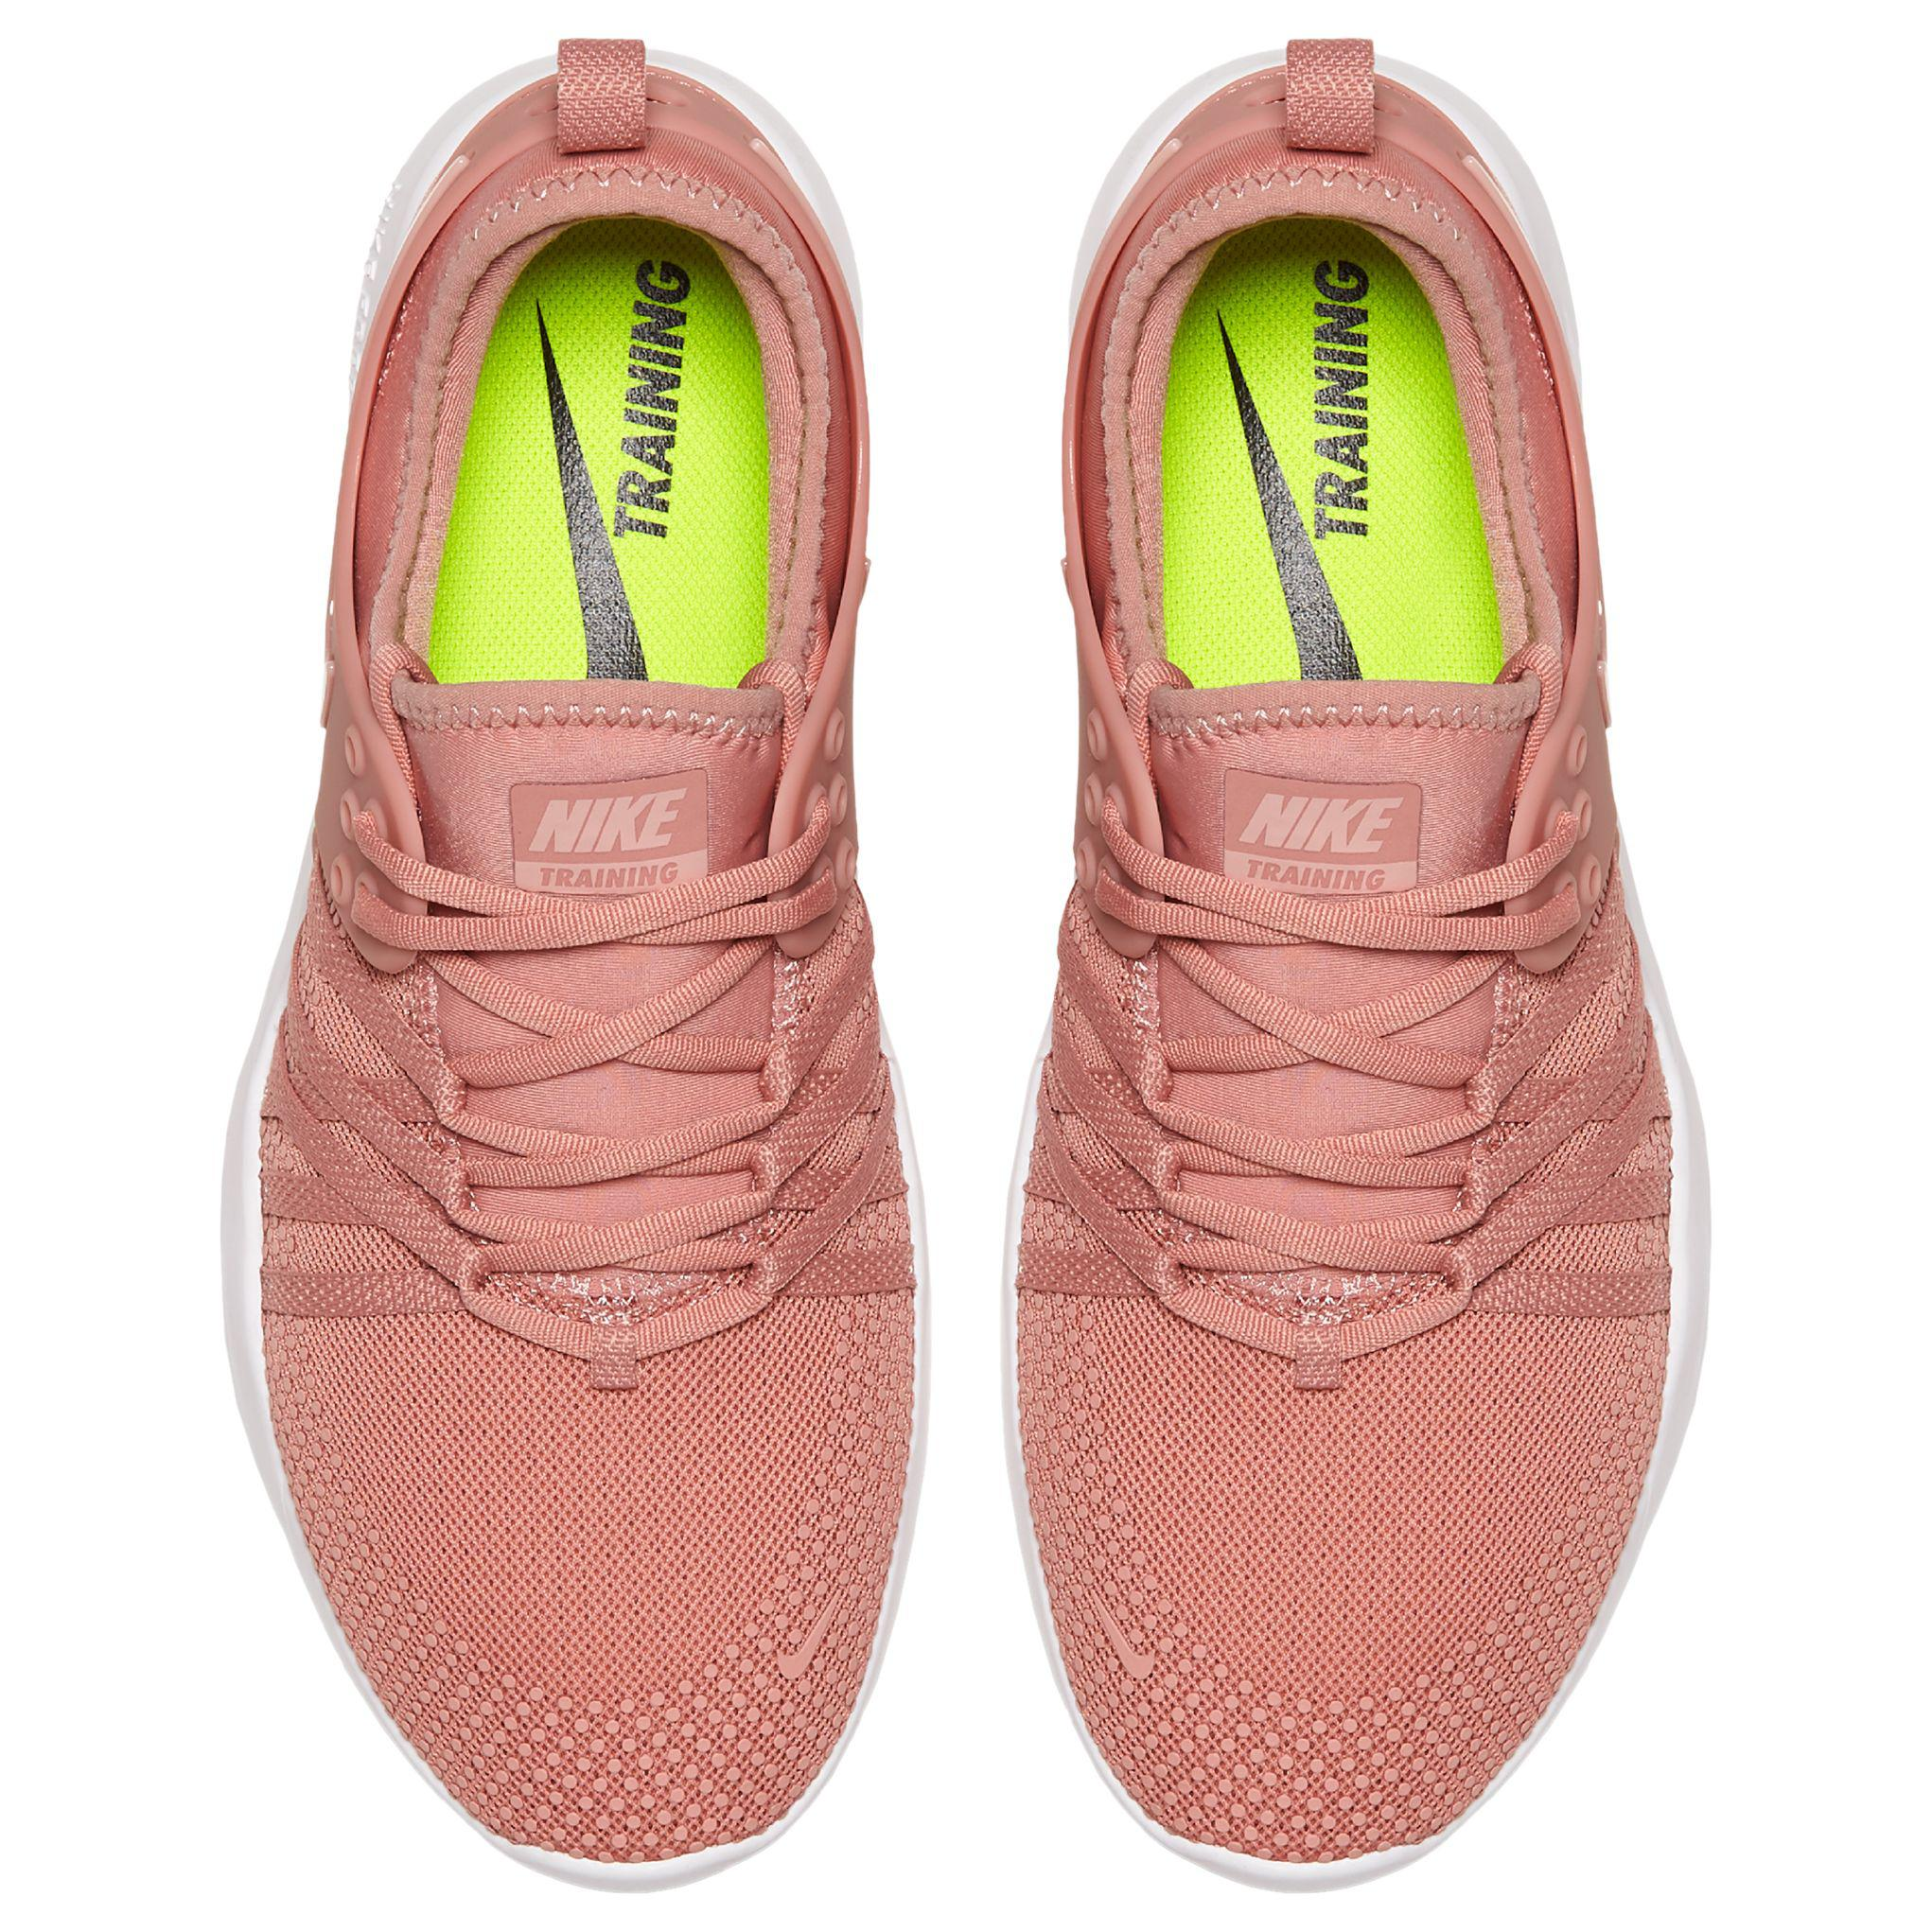 9c839519aac0 ... cheapest nike pink free tr 7 womens training shoes lyst. view  fullscreen 46a75 65c27